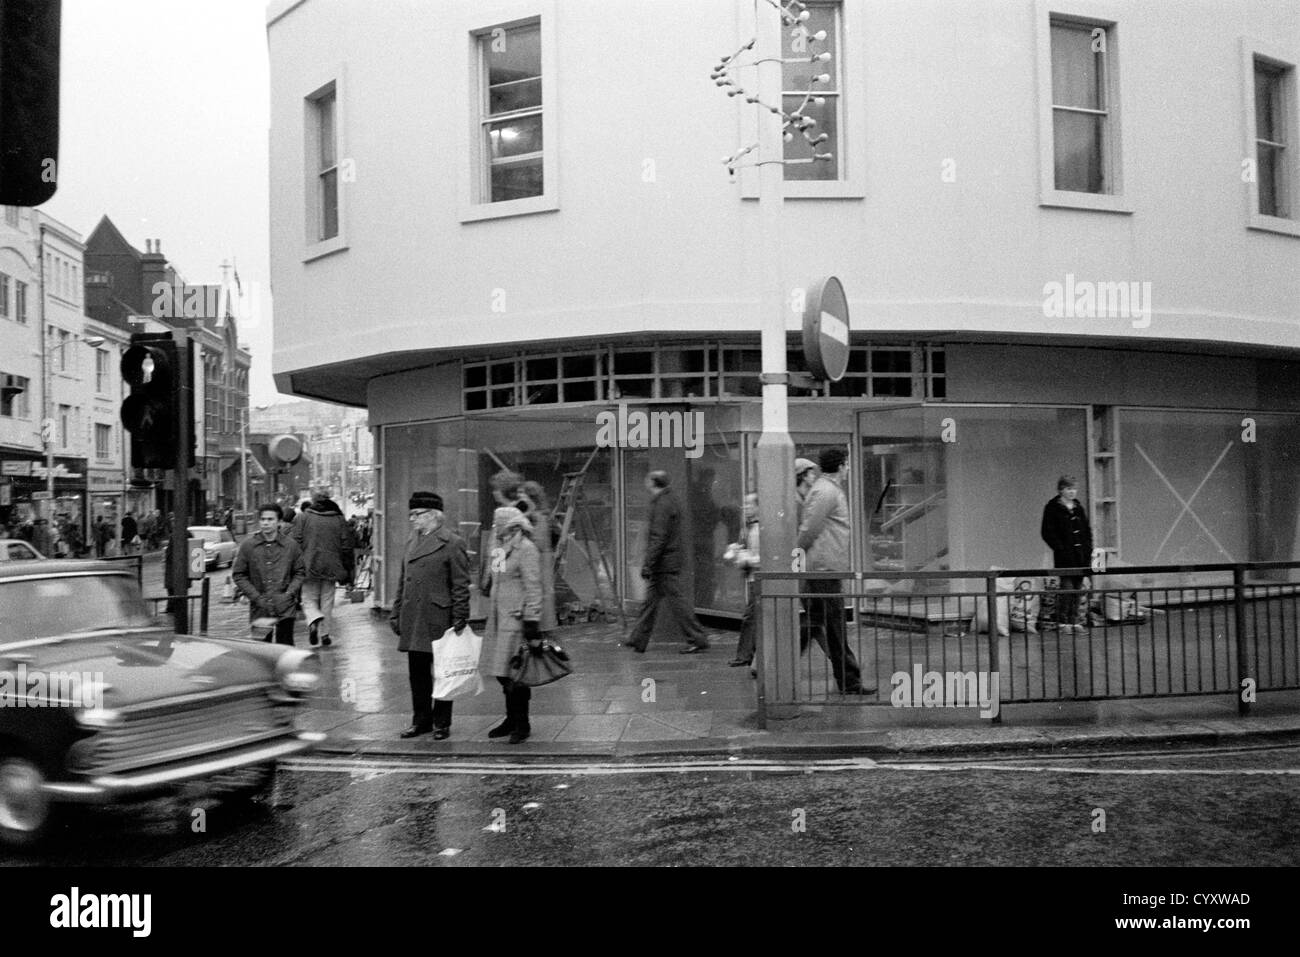 Hastings town centre in 1980 looking towards Queens road. - Stock Image